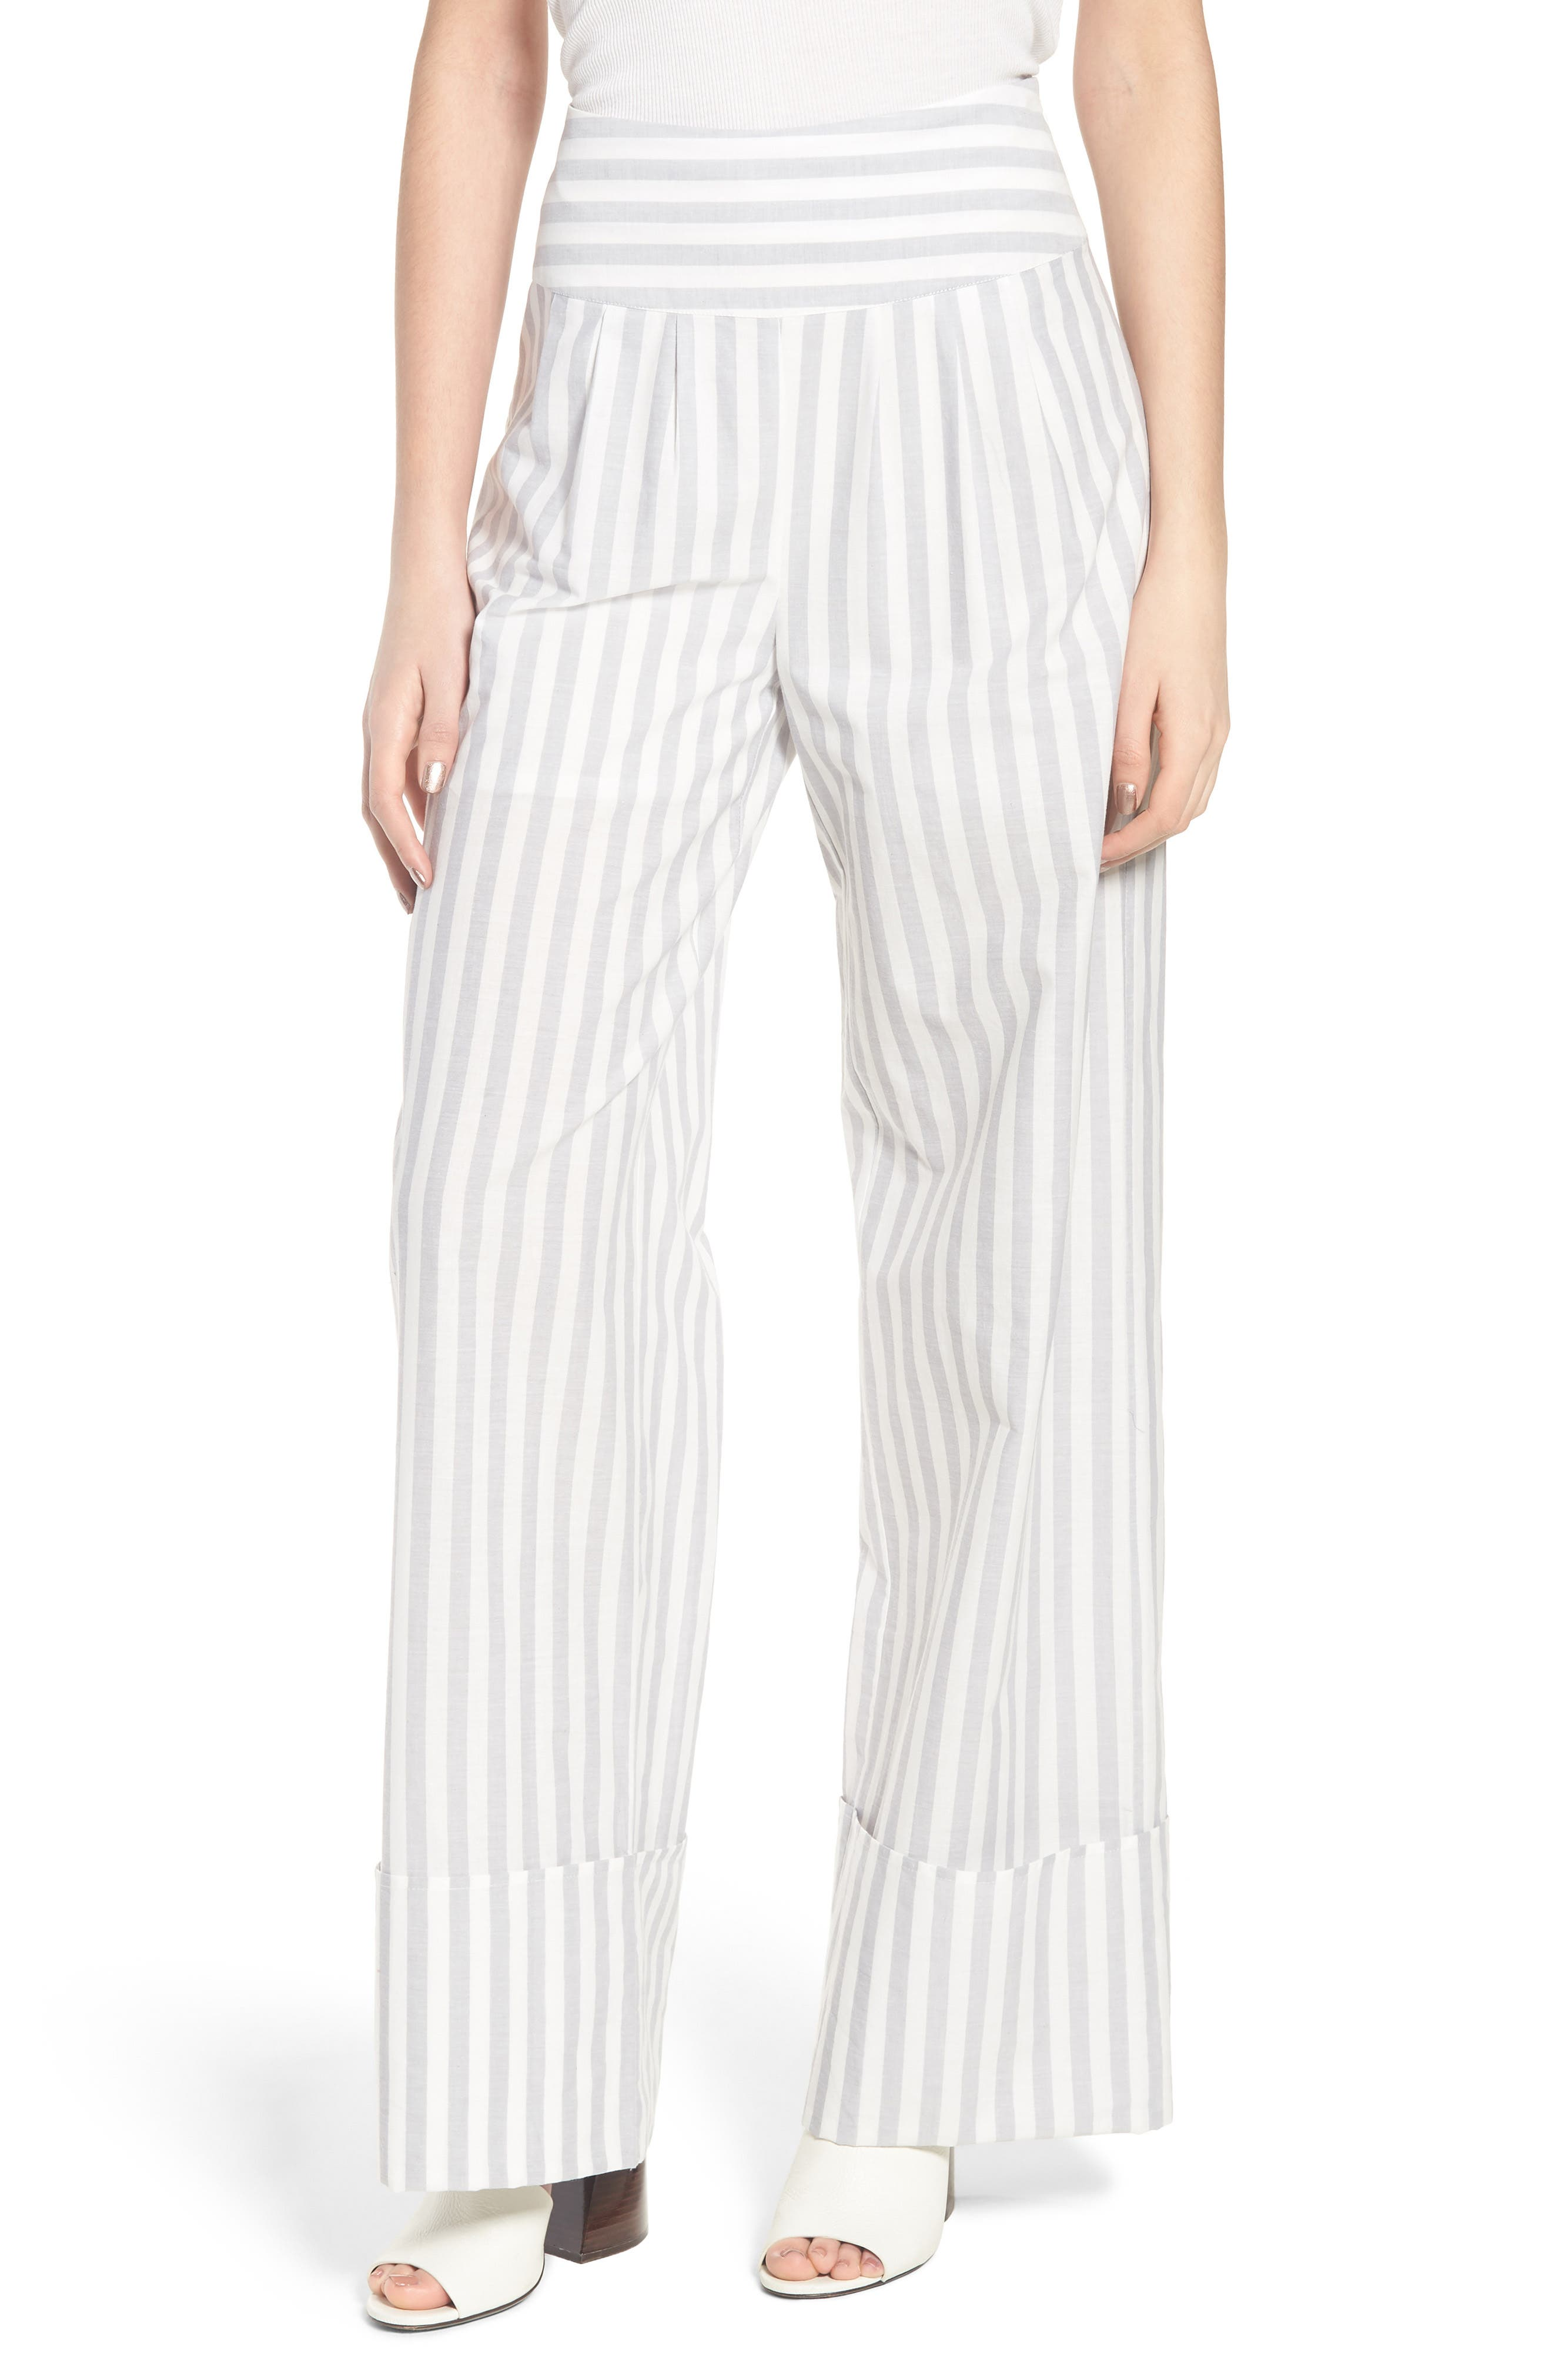 LOST INK,                             Wide Turn Up Stripe Trouser,                             Main thumbnail 1, color,                             020